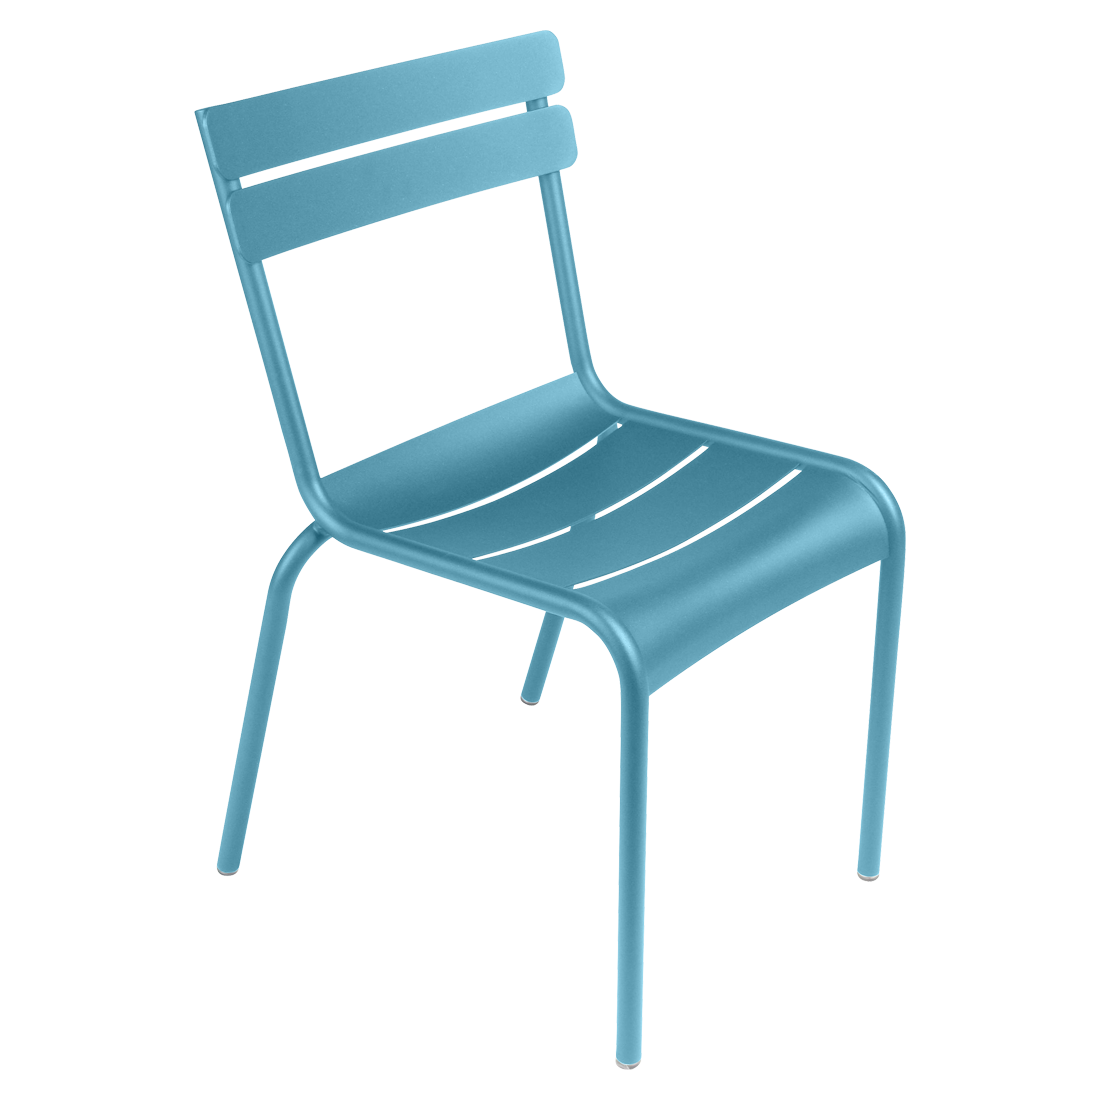 Chaise luxembourg de fermob bleu turquoise for Chaise longue bleu turquoise